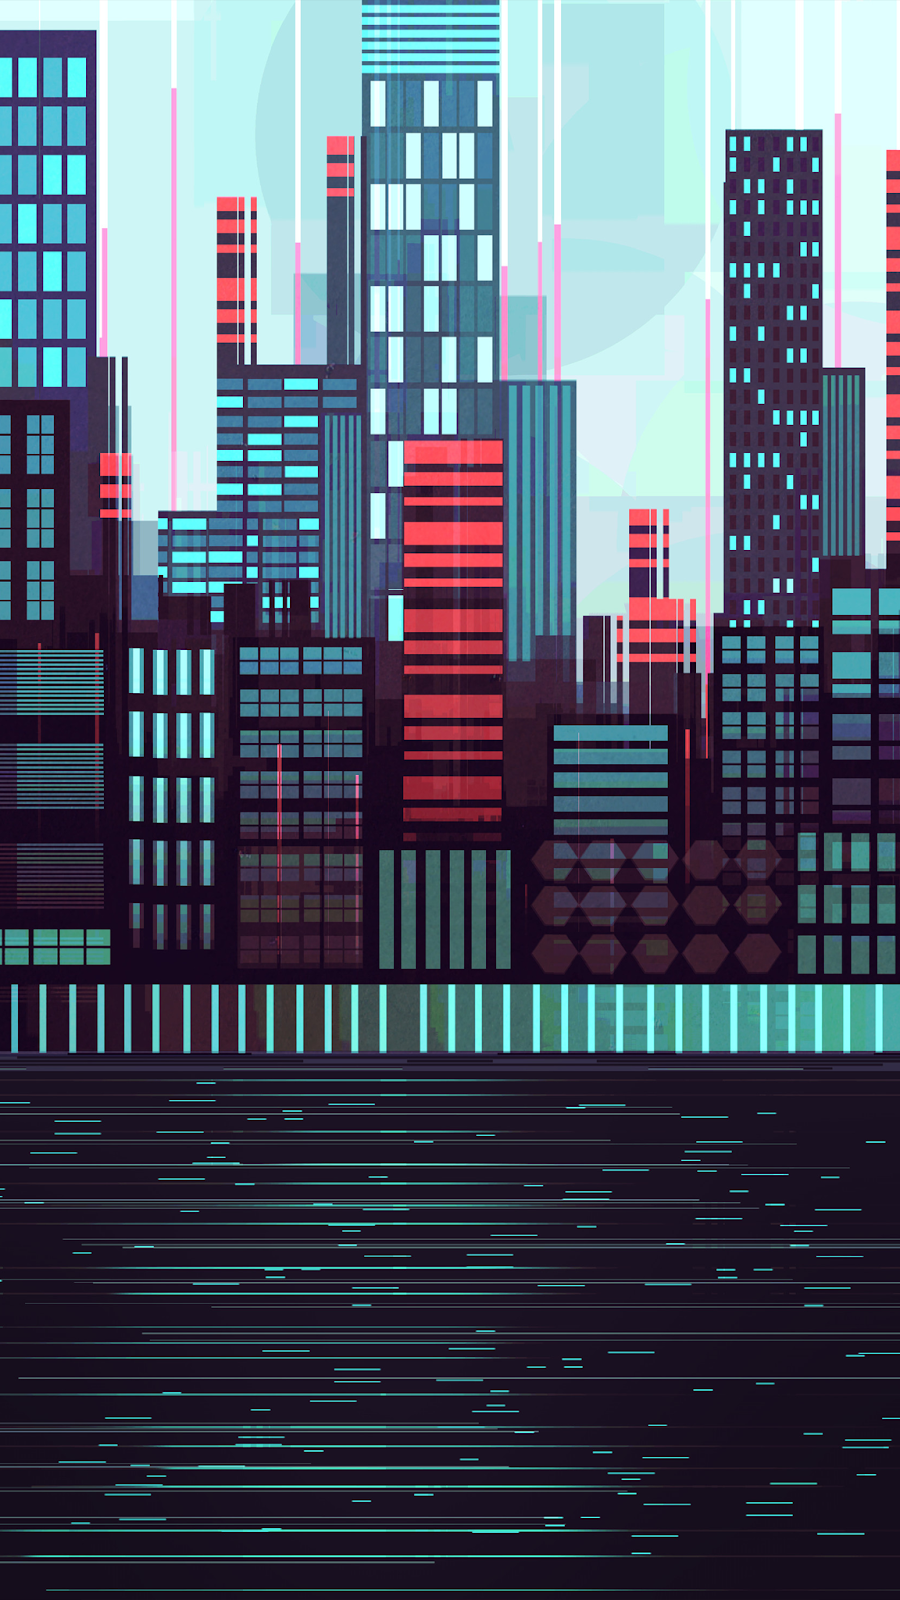 City illustration wallpaper